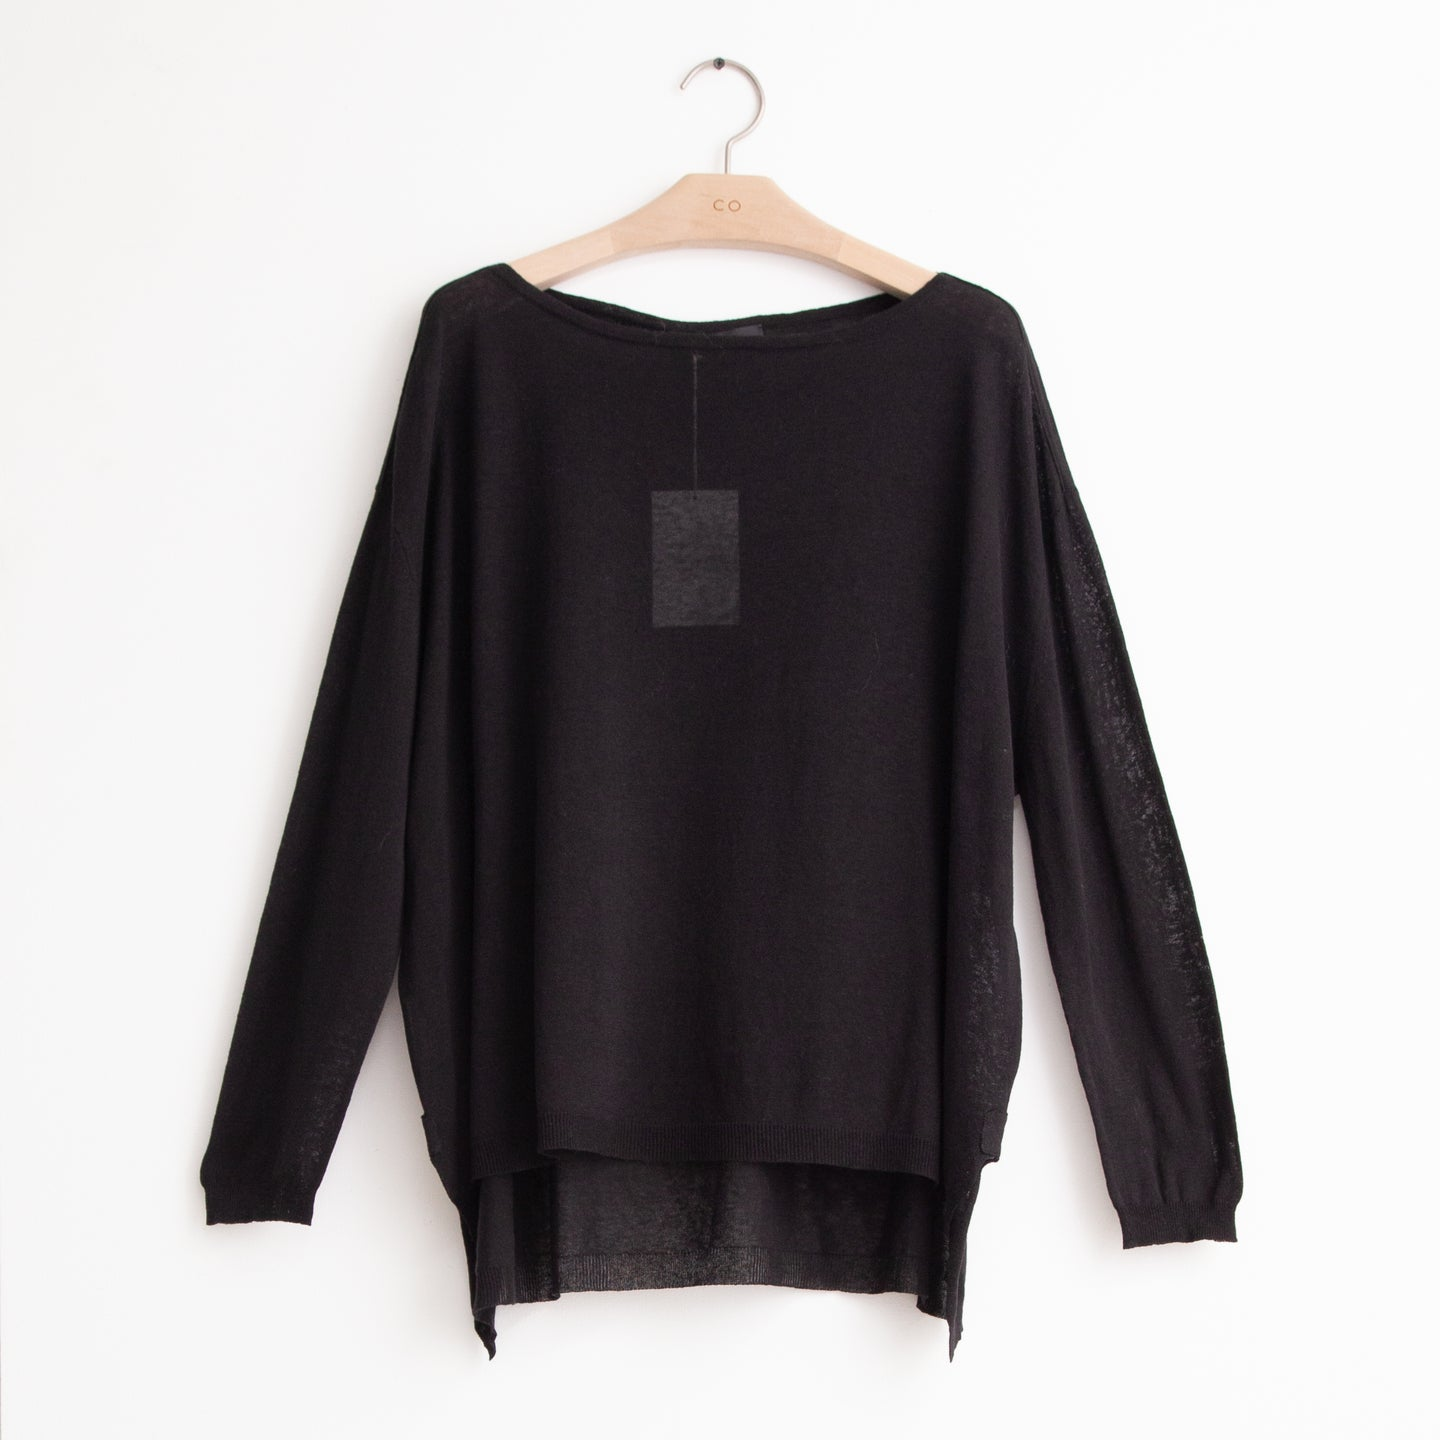 Oversized boat neck sweater with high low hem in black cotton - CO